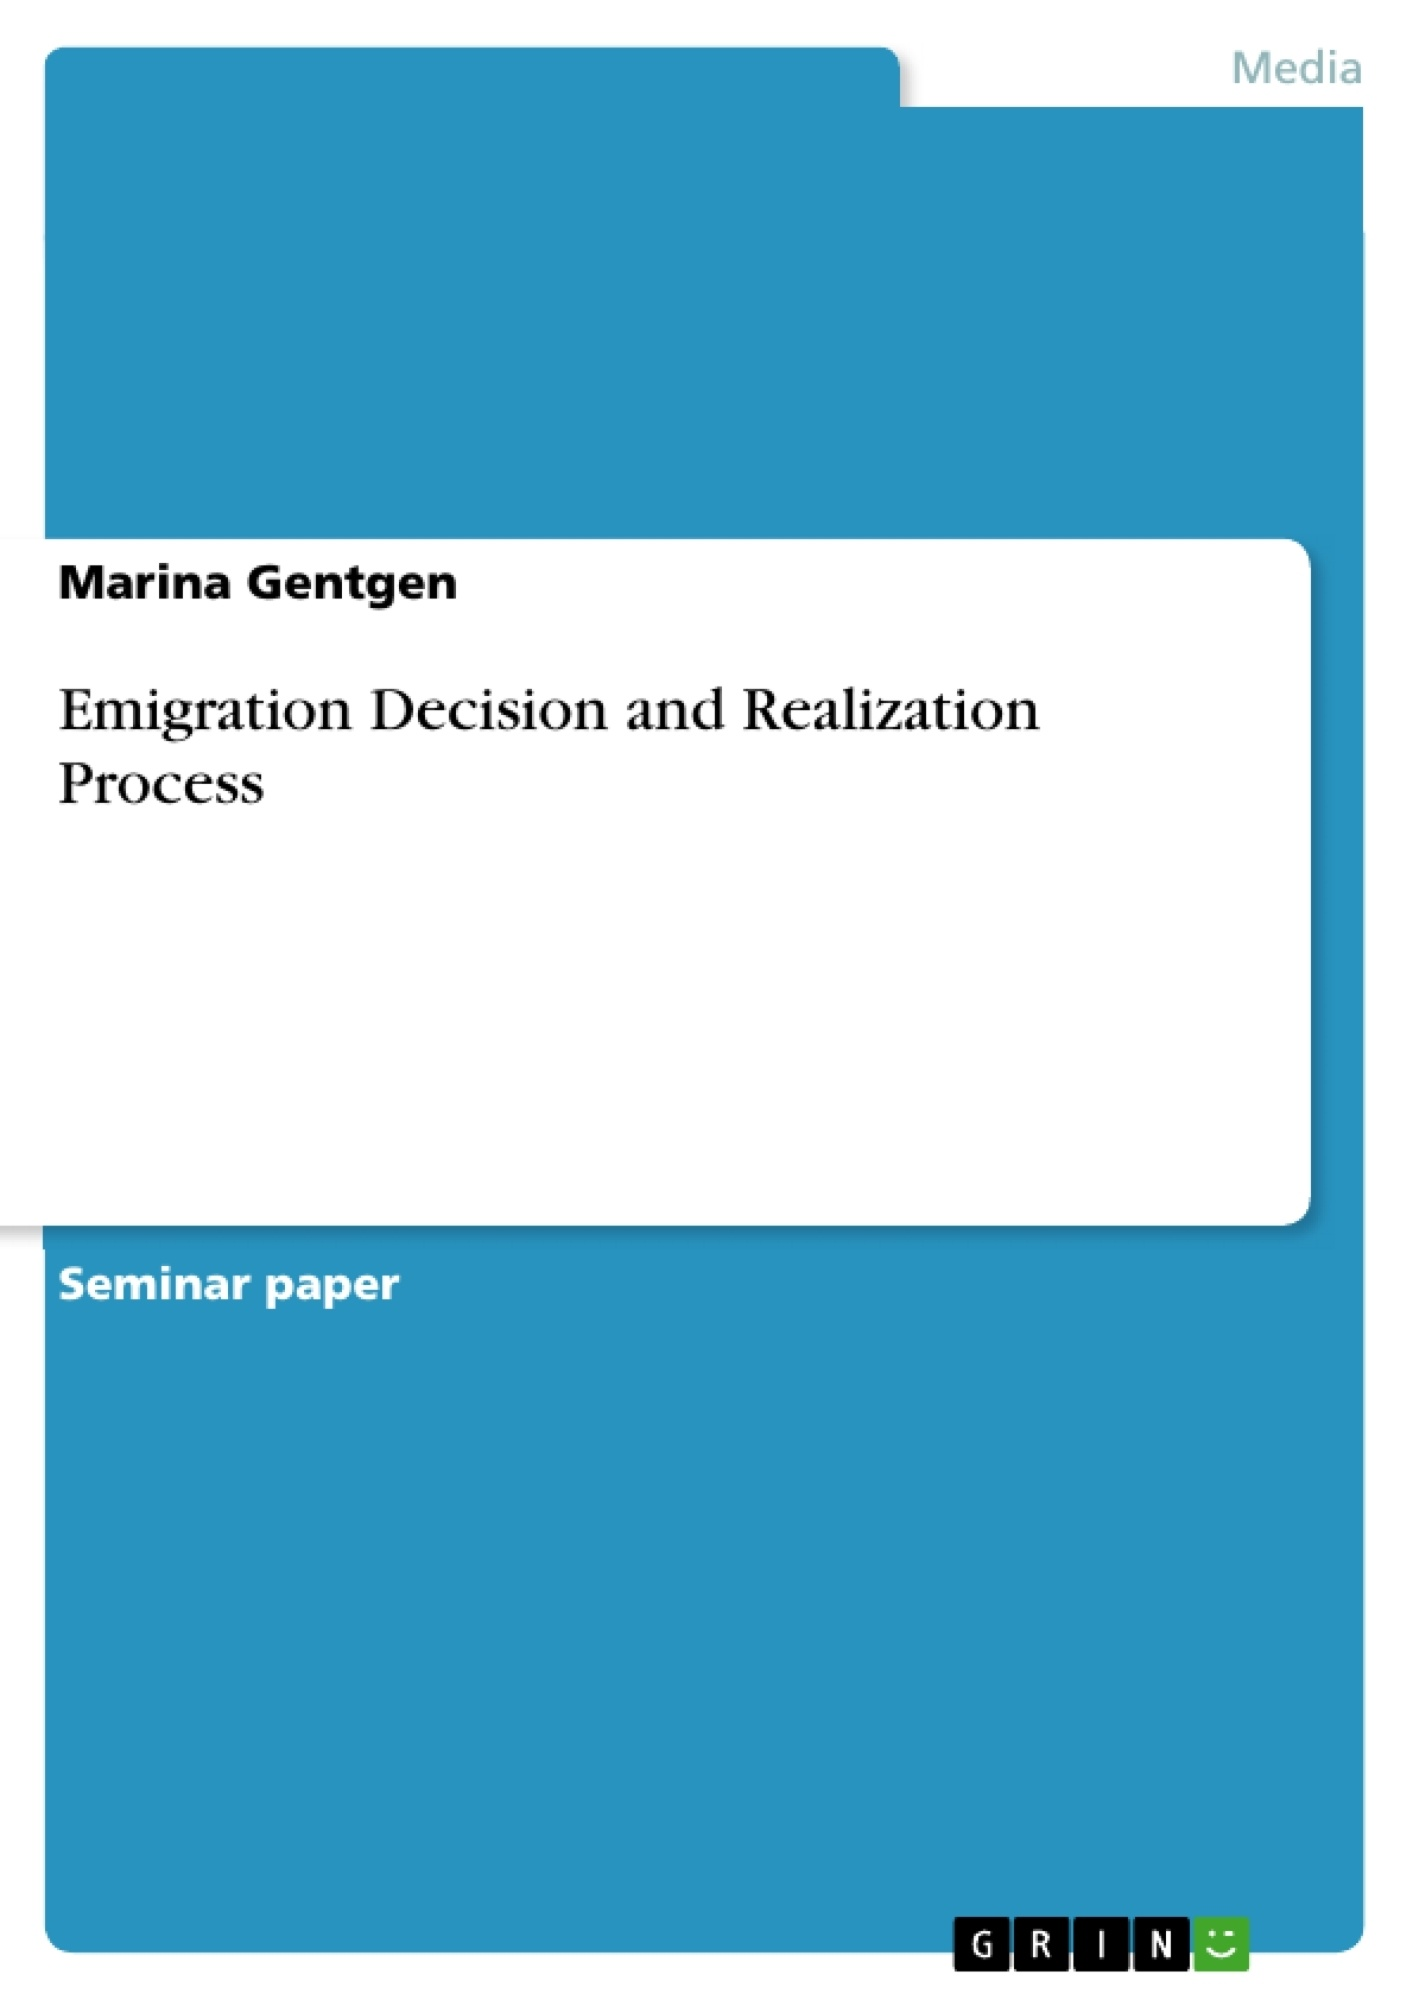 Title: Emigration Decision and Realization Process